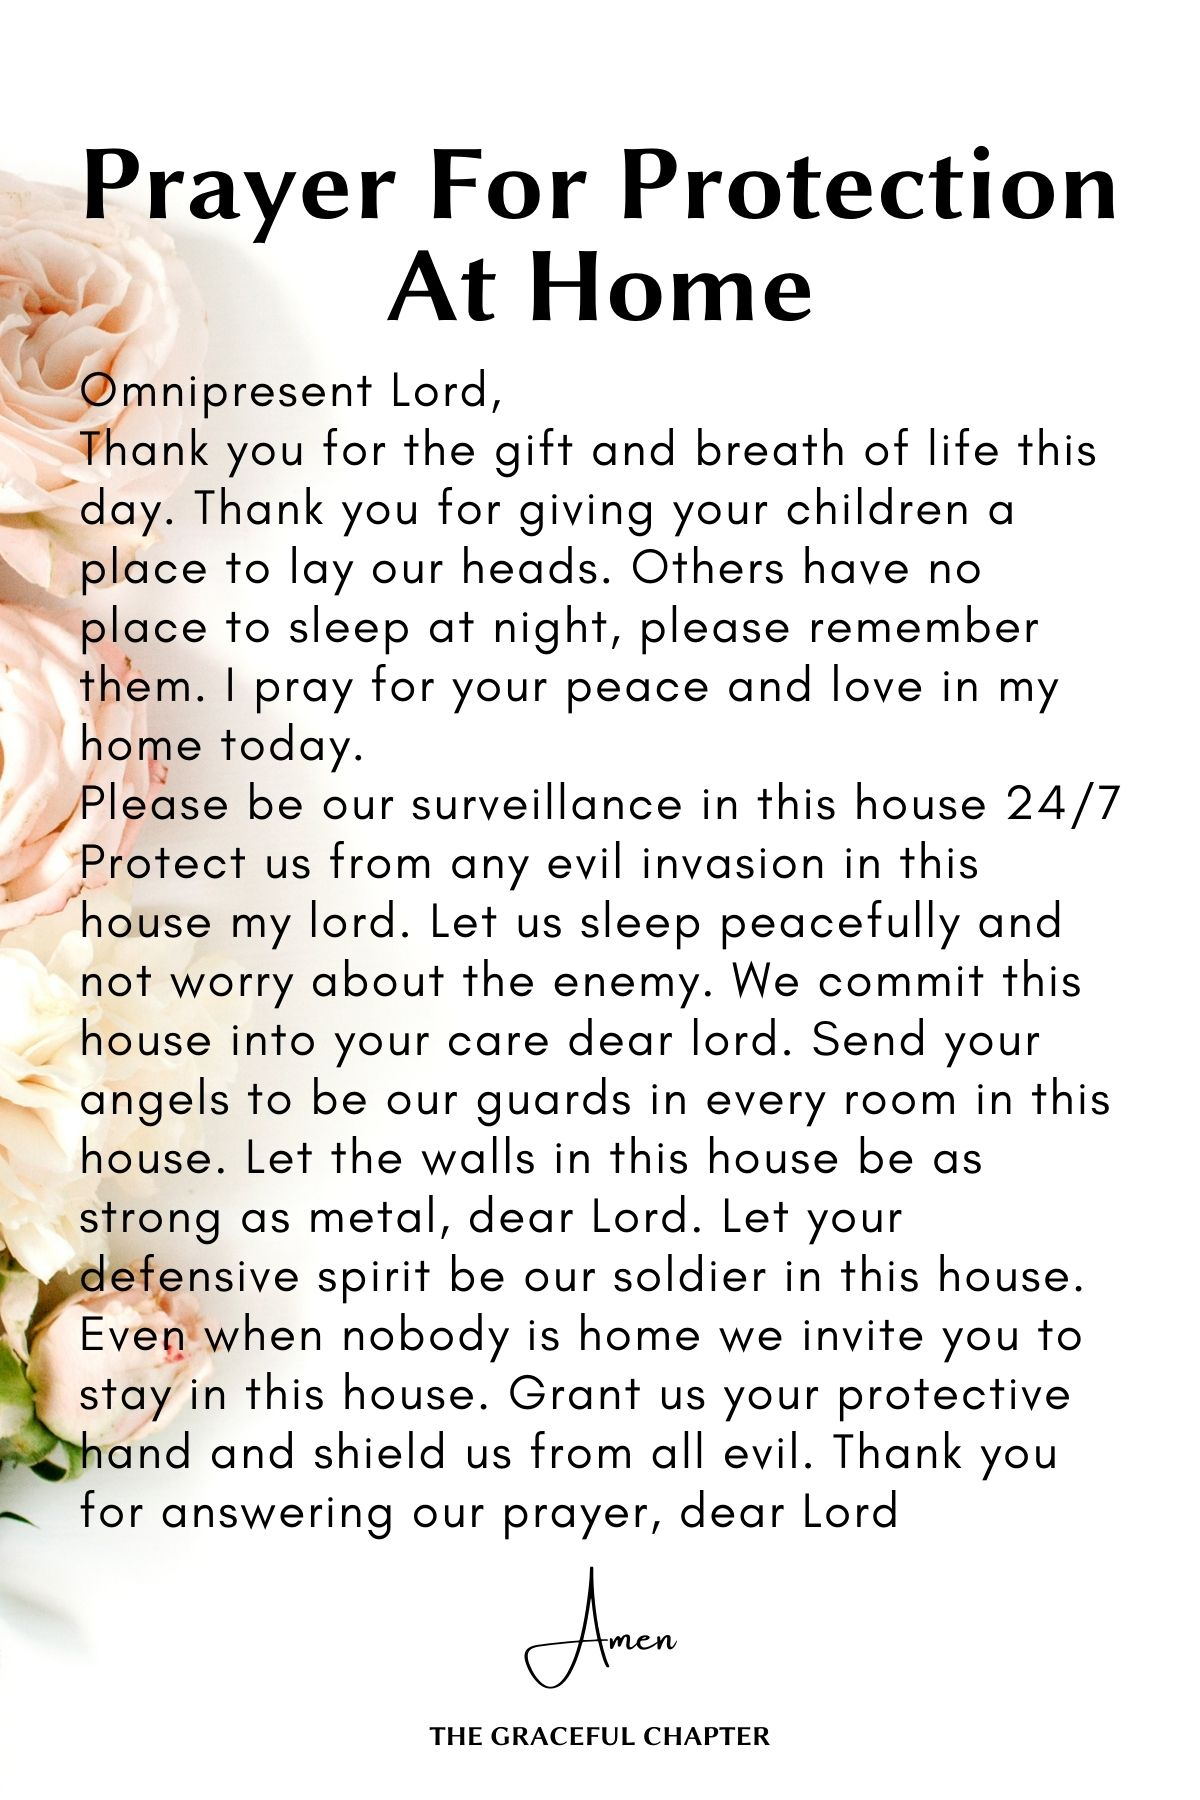 Prayer for Protection at home